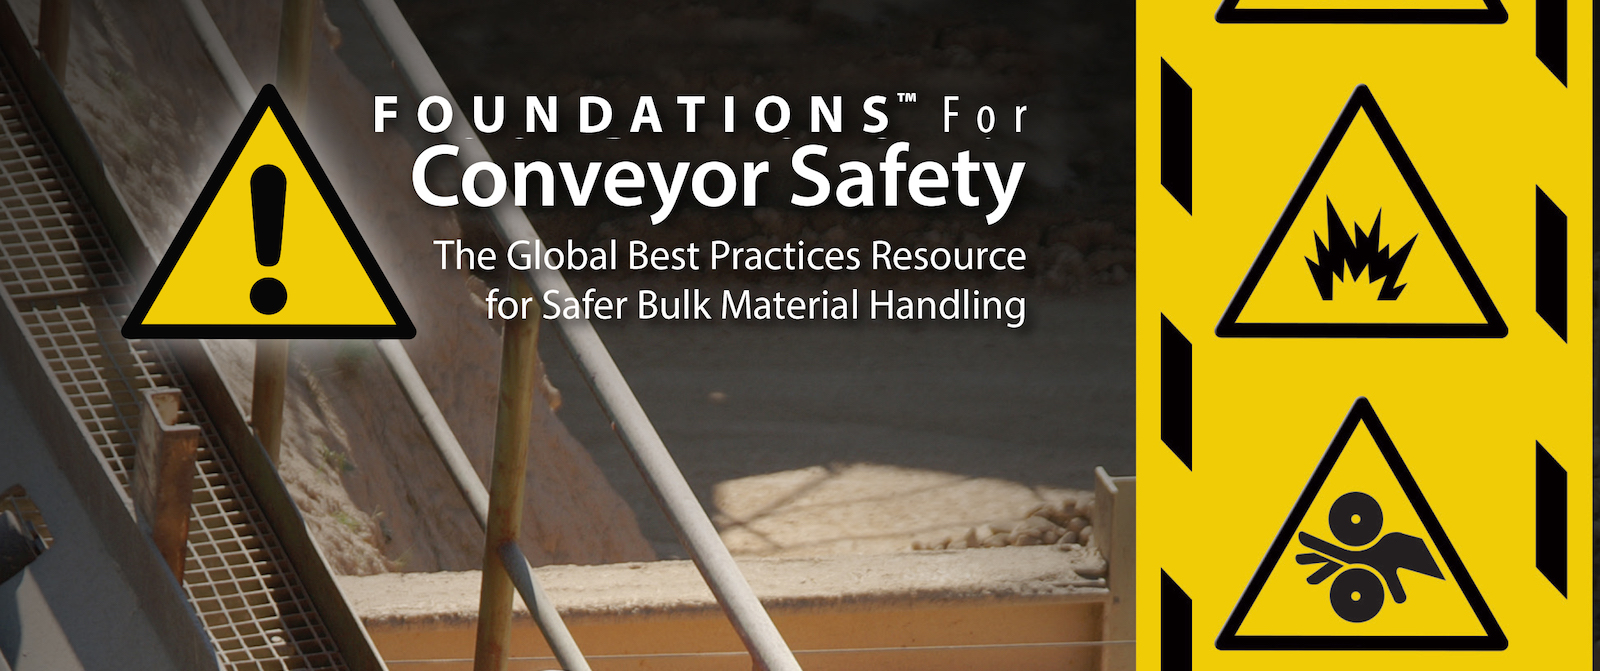 Martin Engineering: Industry-First Reference Book presents Global Best Practices for Conveyor Safety